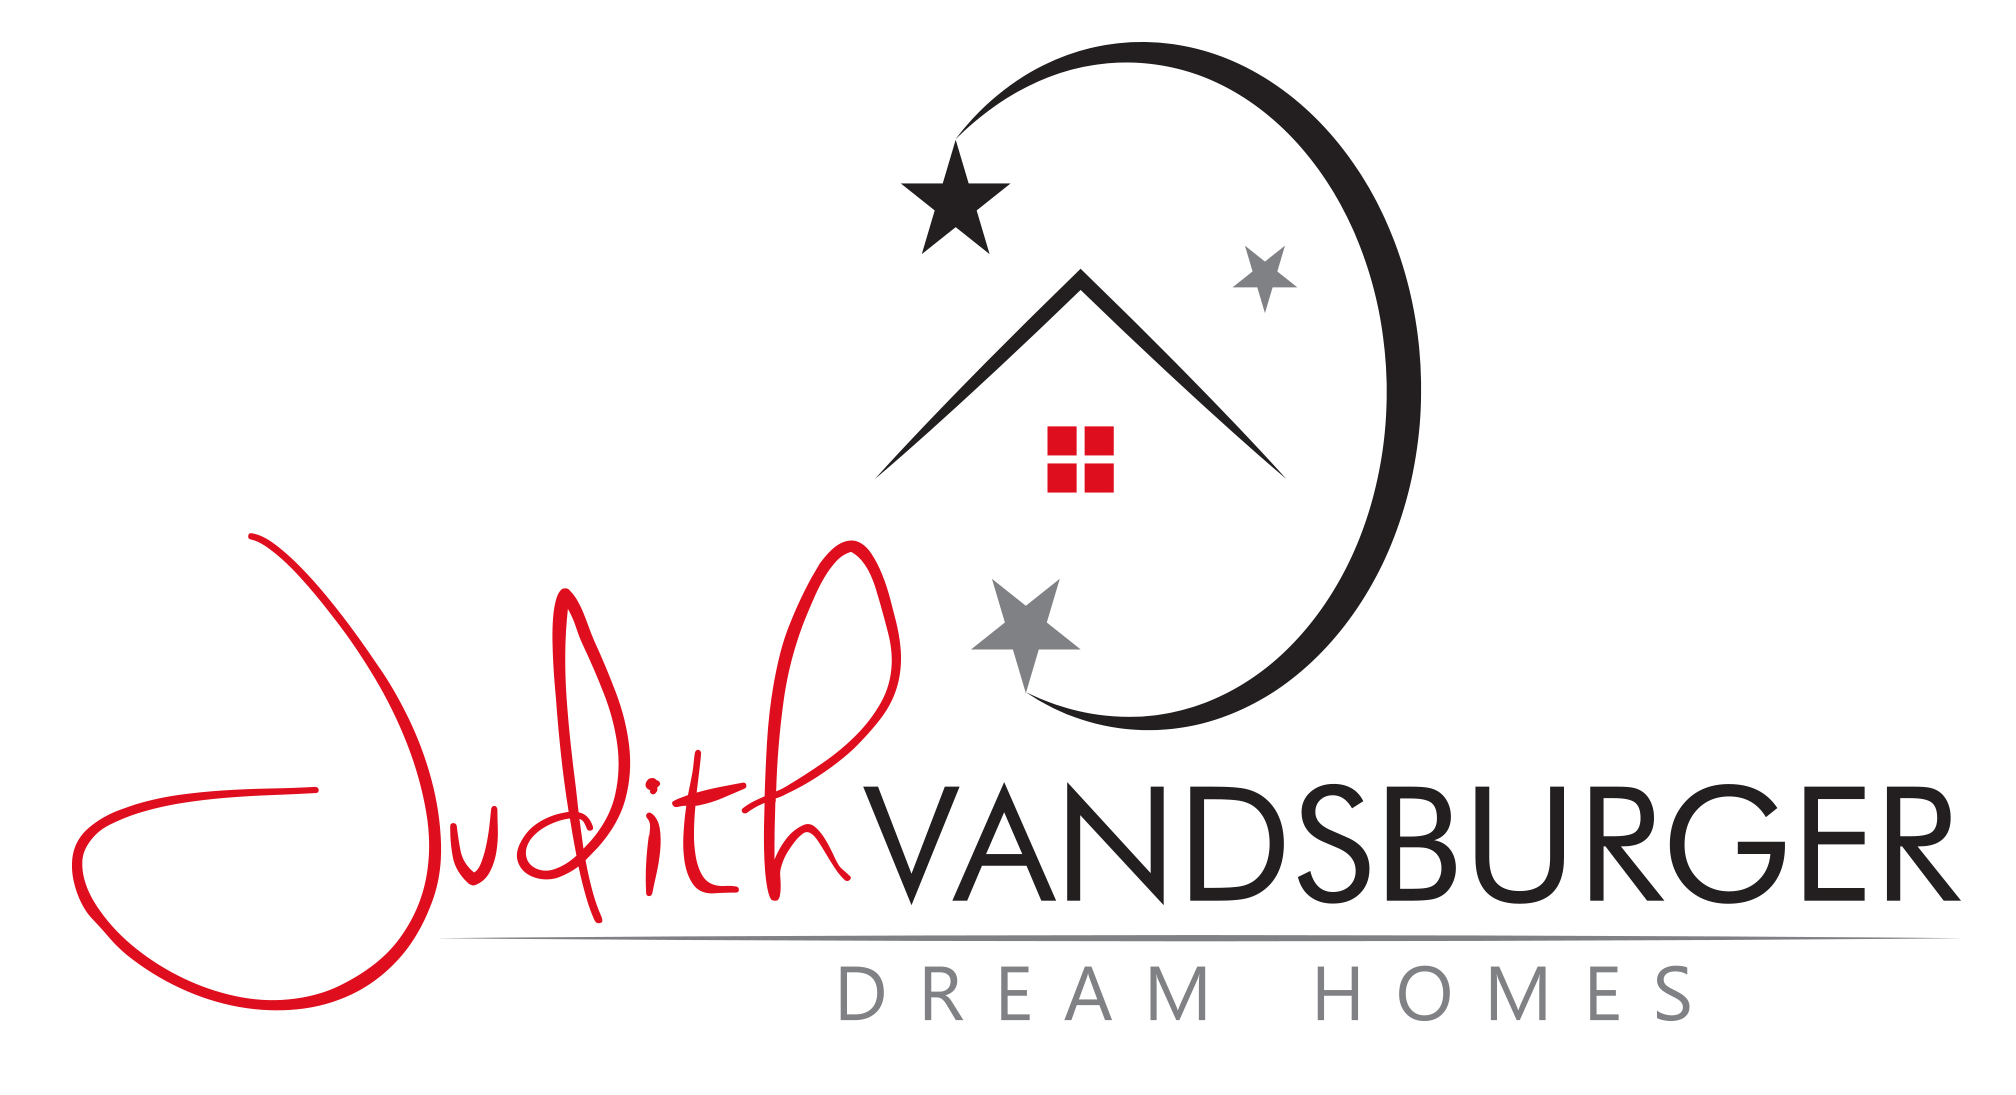 Judith Vandsburger Dream Homes